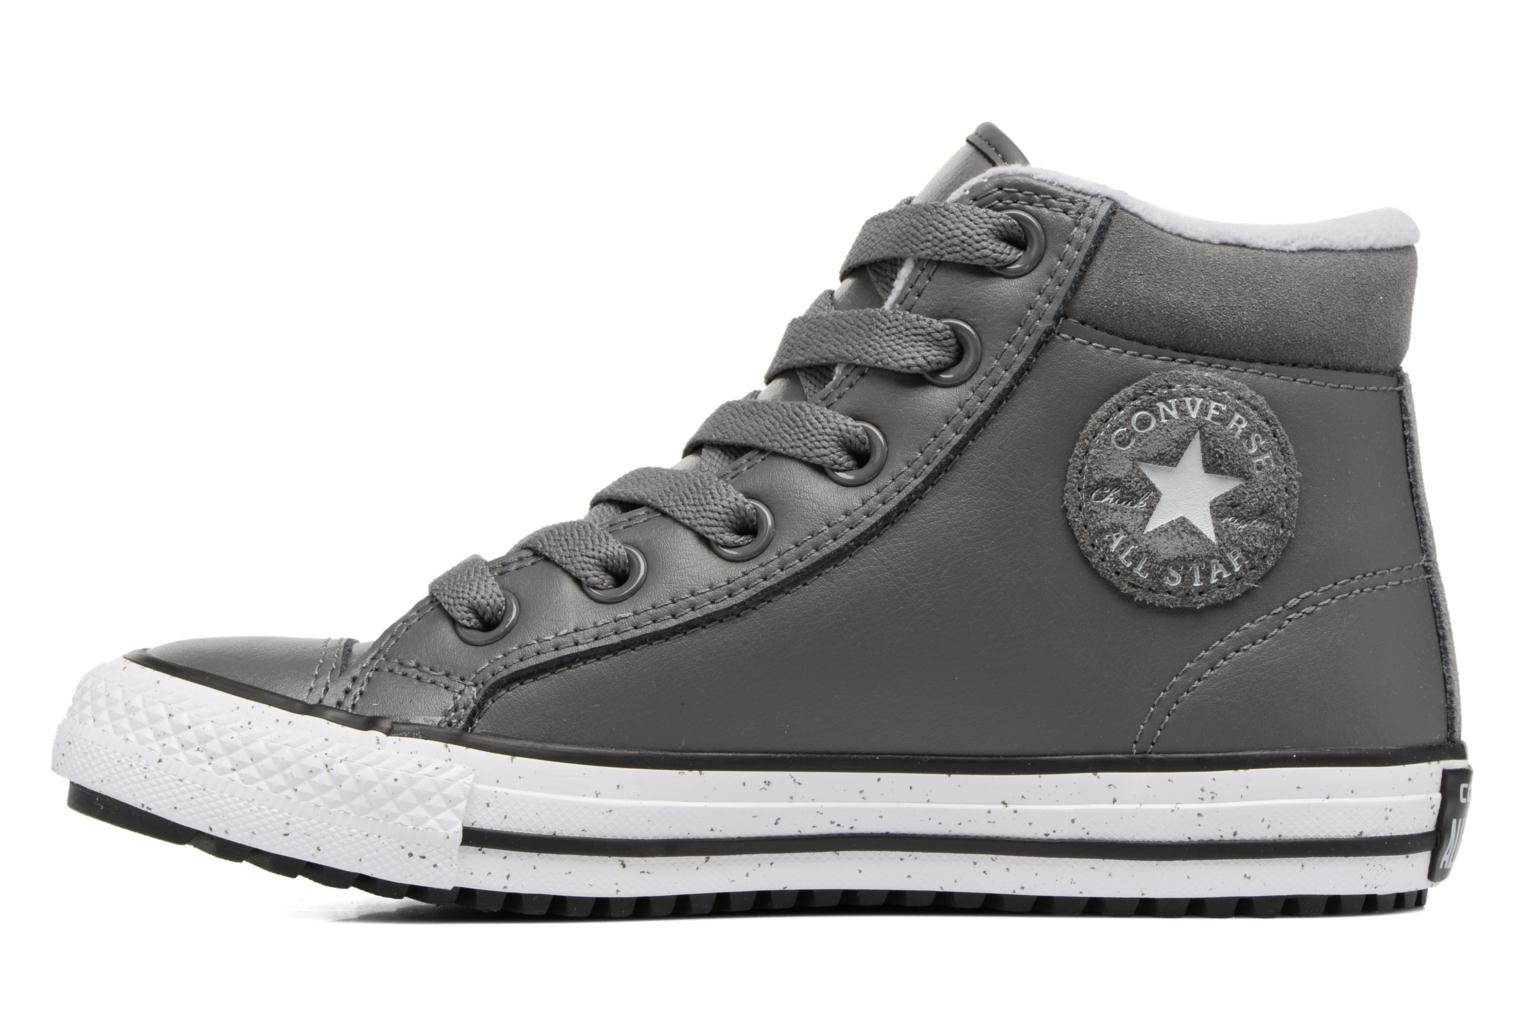 Chuck Taylor All Star Converse Boot PC Leather Hi Thunder/Black/White